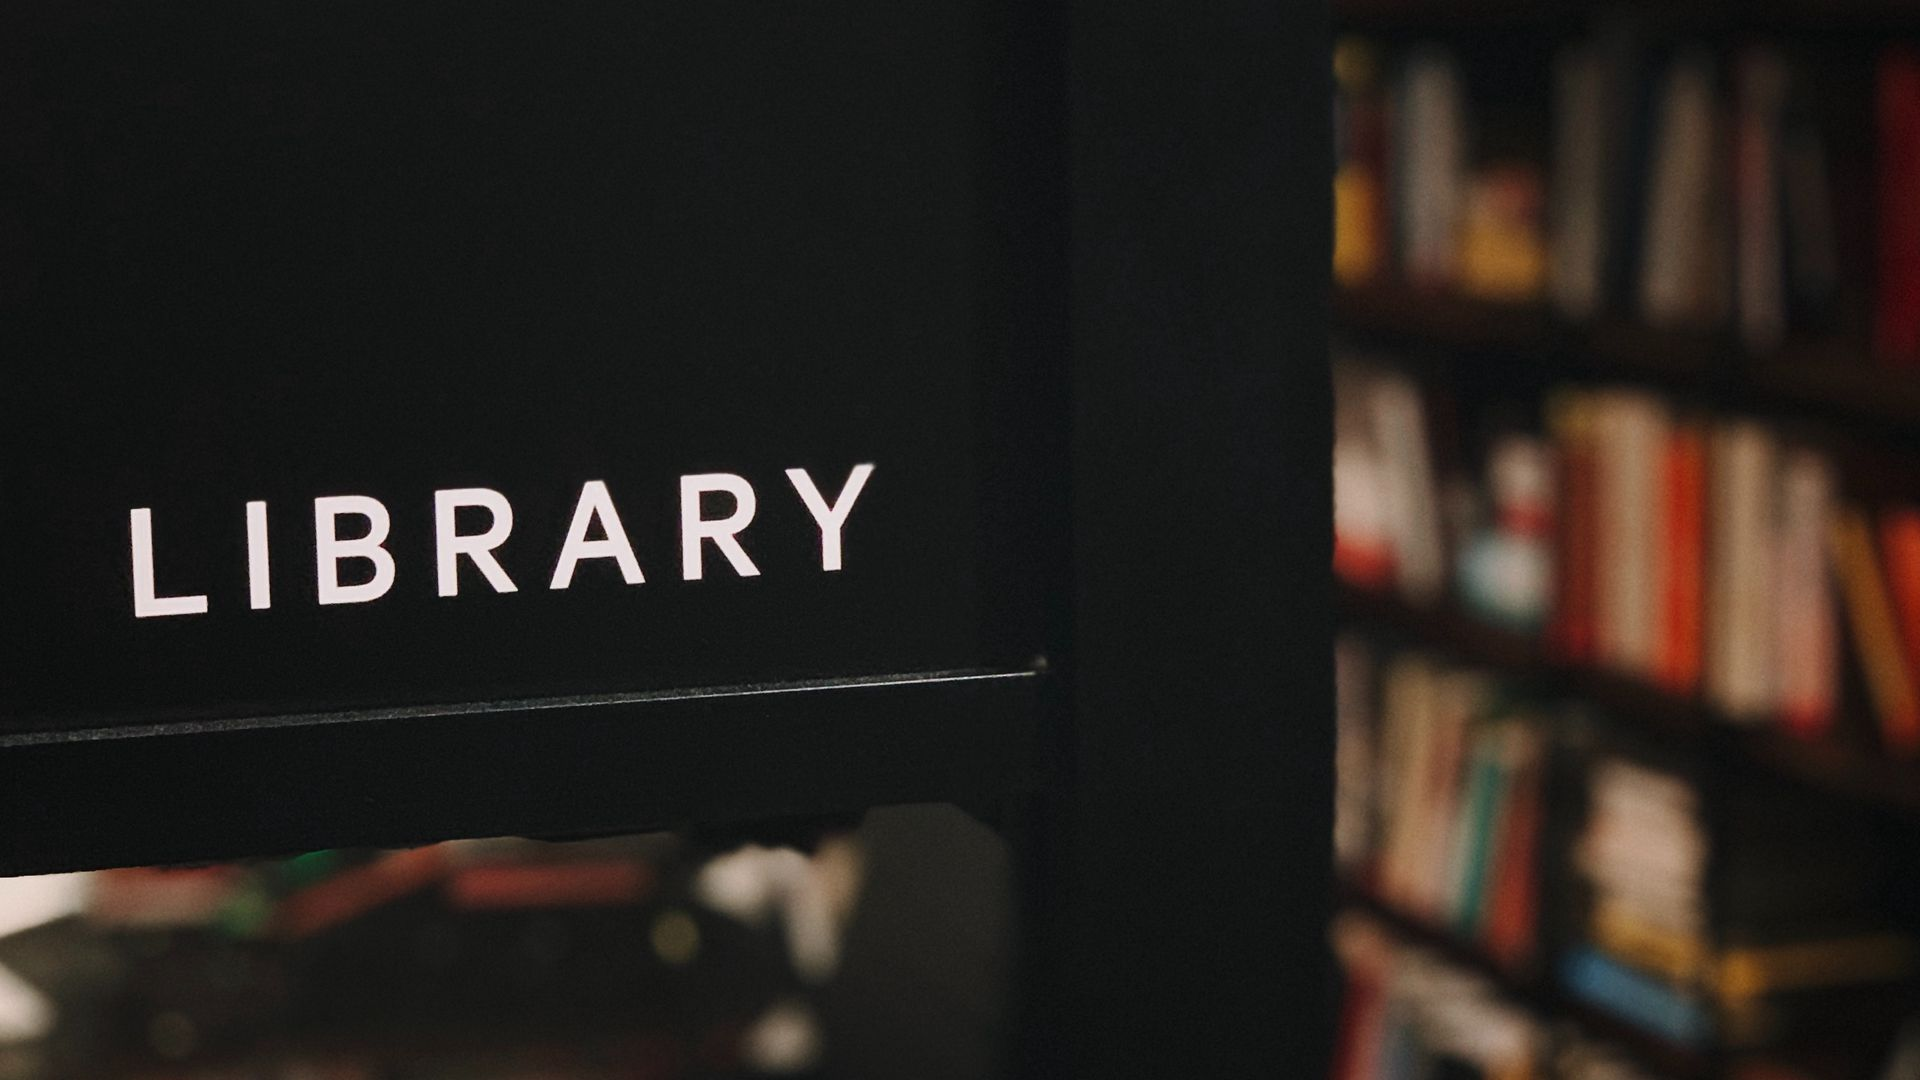 library stock wallpapers